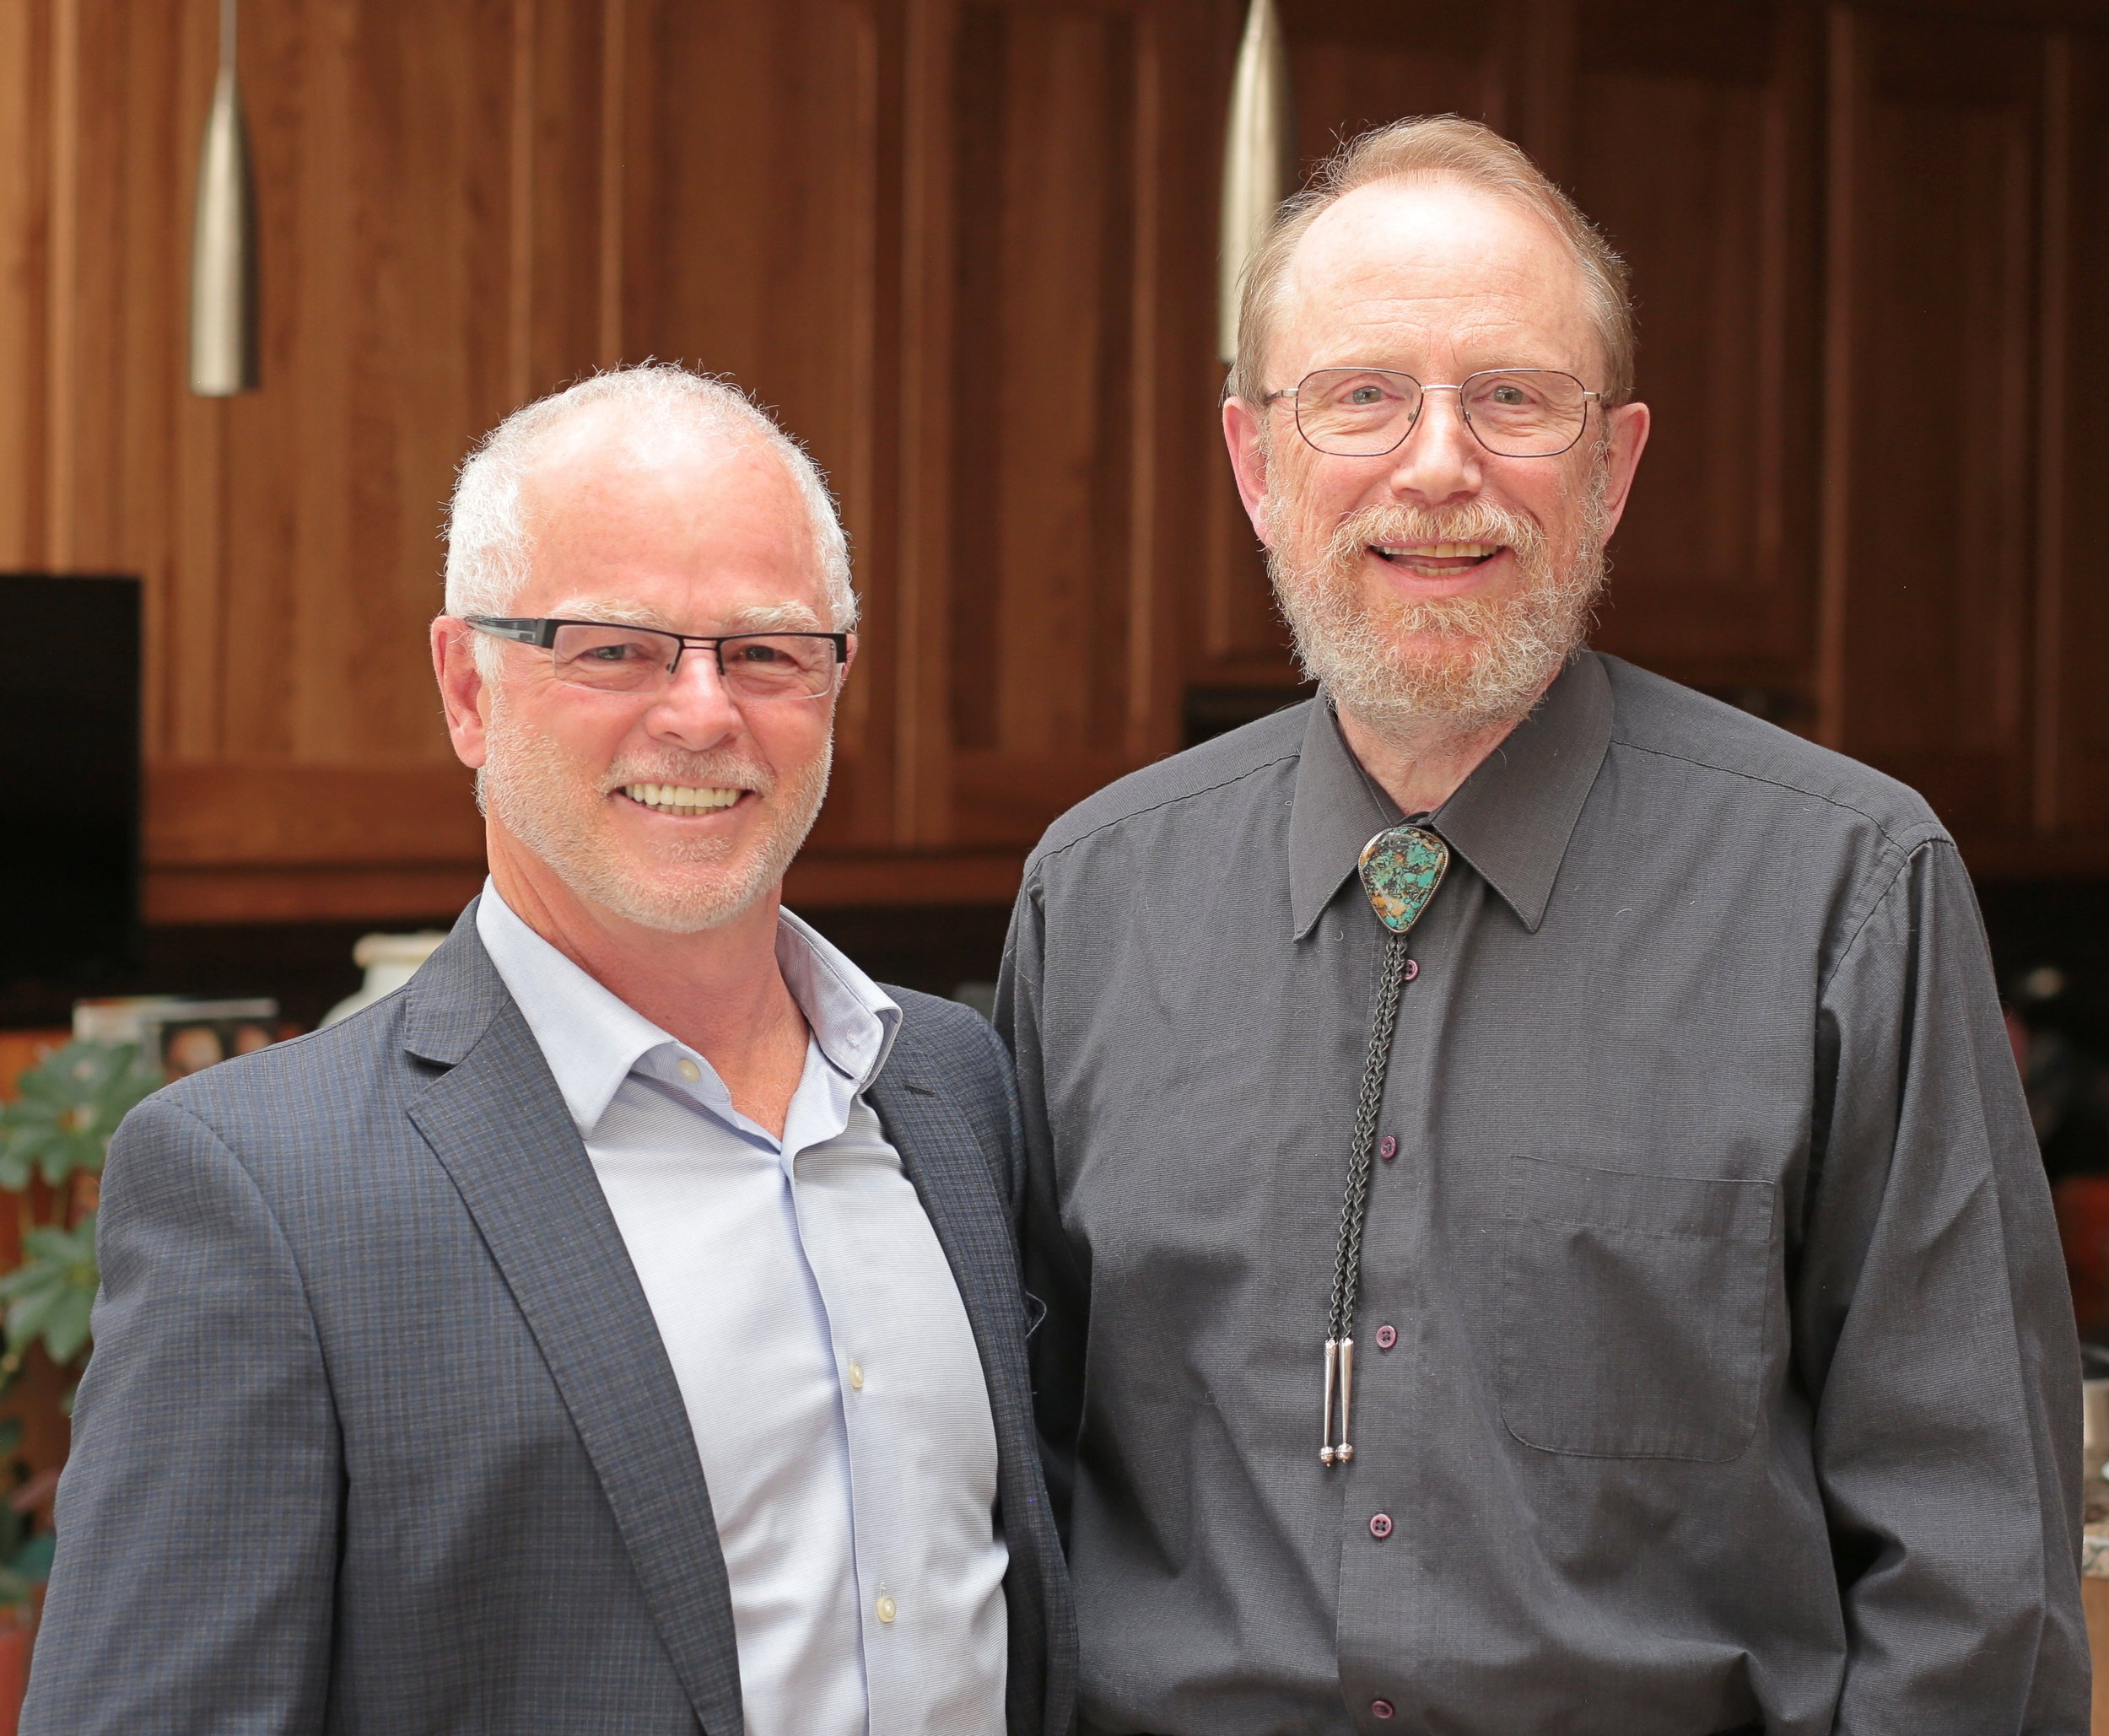 9-Mike Pond with Dr. Bill Miller in Albuquerque, New Mexico.jpg